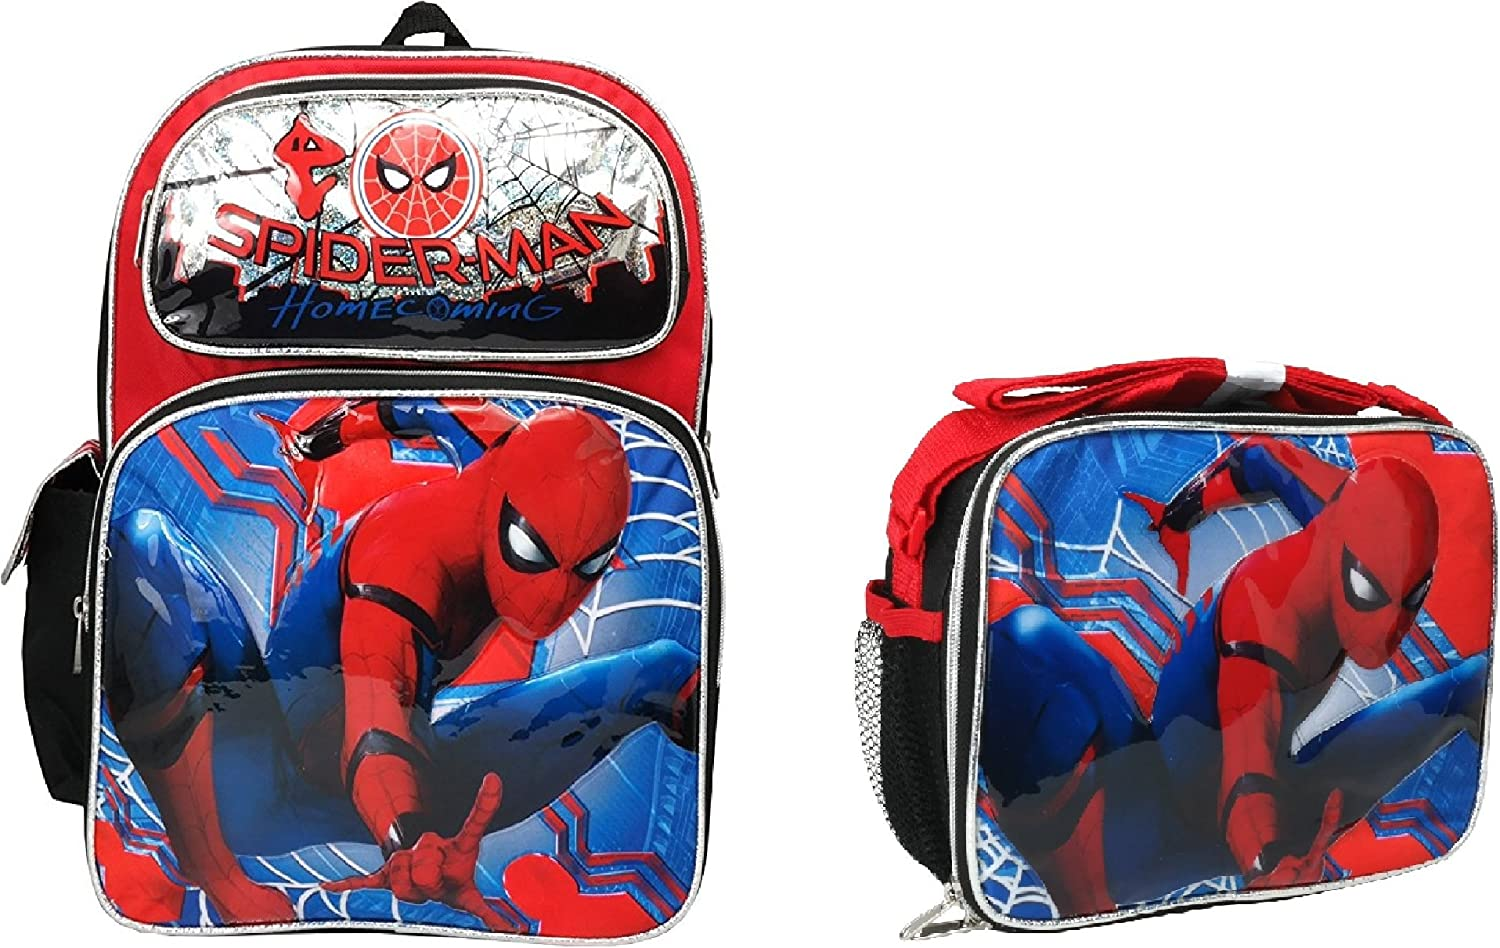 Home Coming Marvel Spiderman Boys 16 Canvas Black School Backpack w Lunch Bag